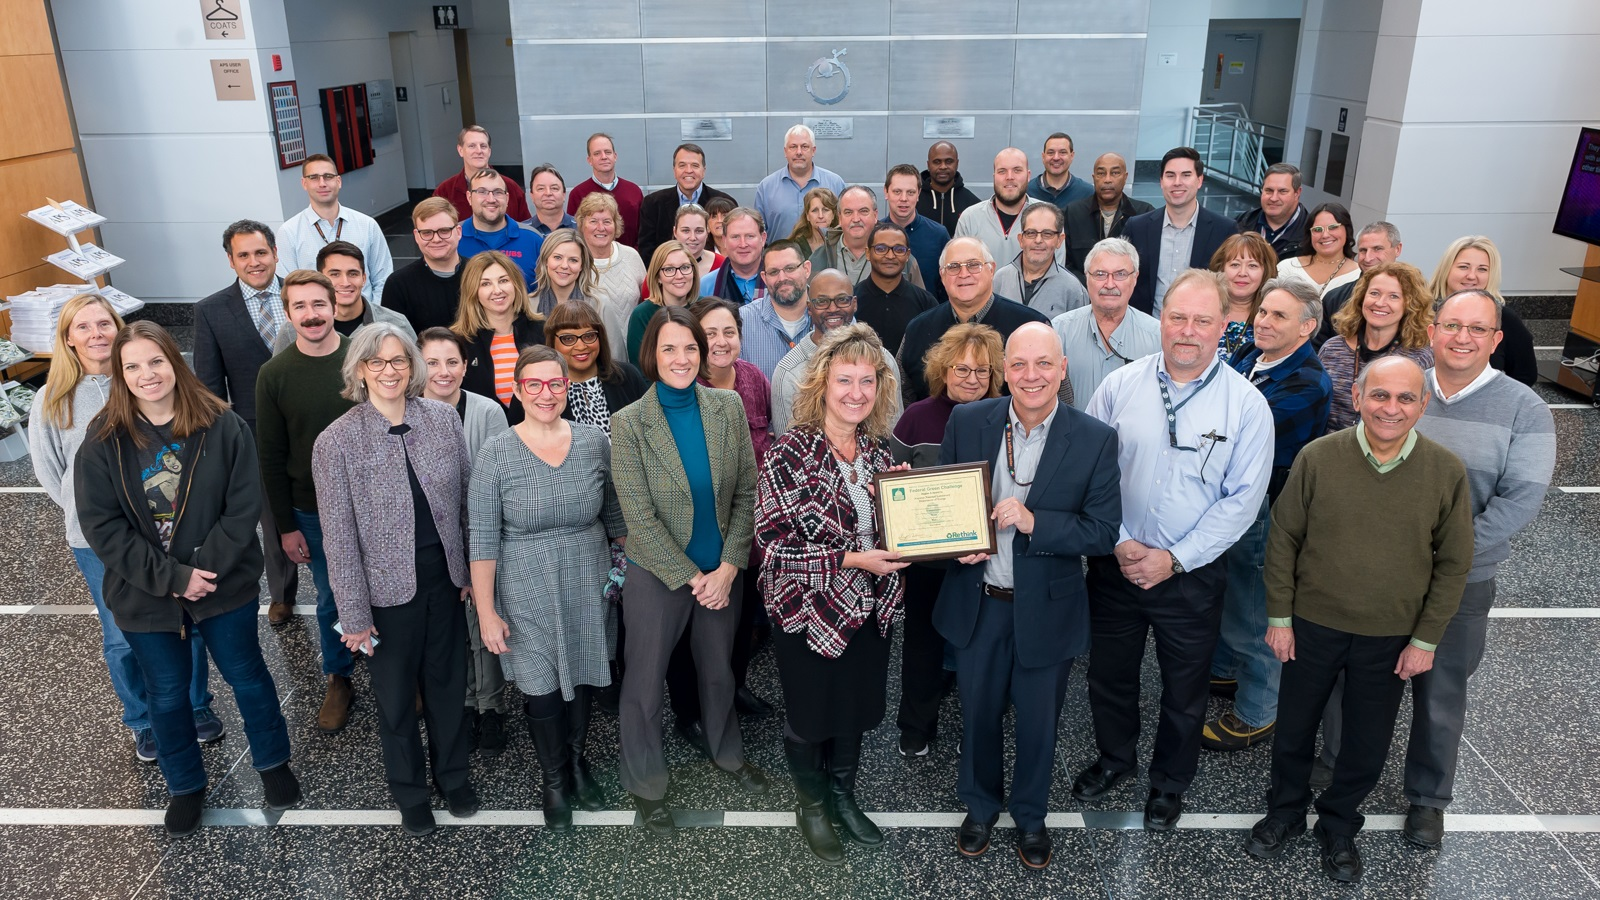 Catherine Hurley and team have been awarded the Federal Green Challenge award.